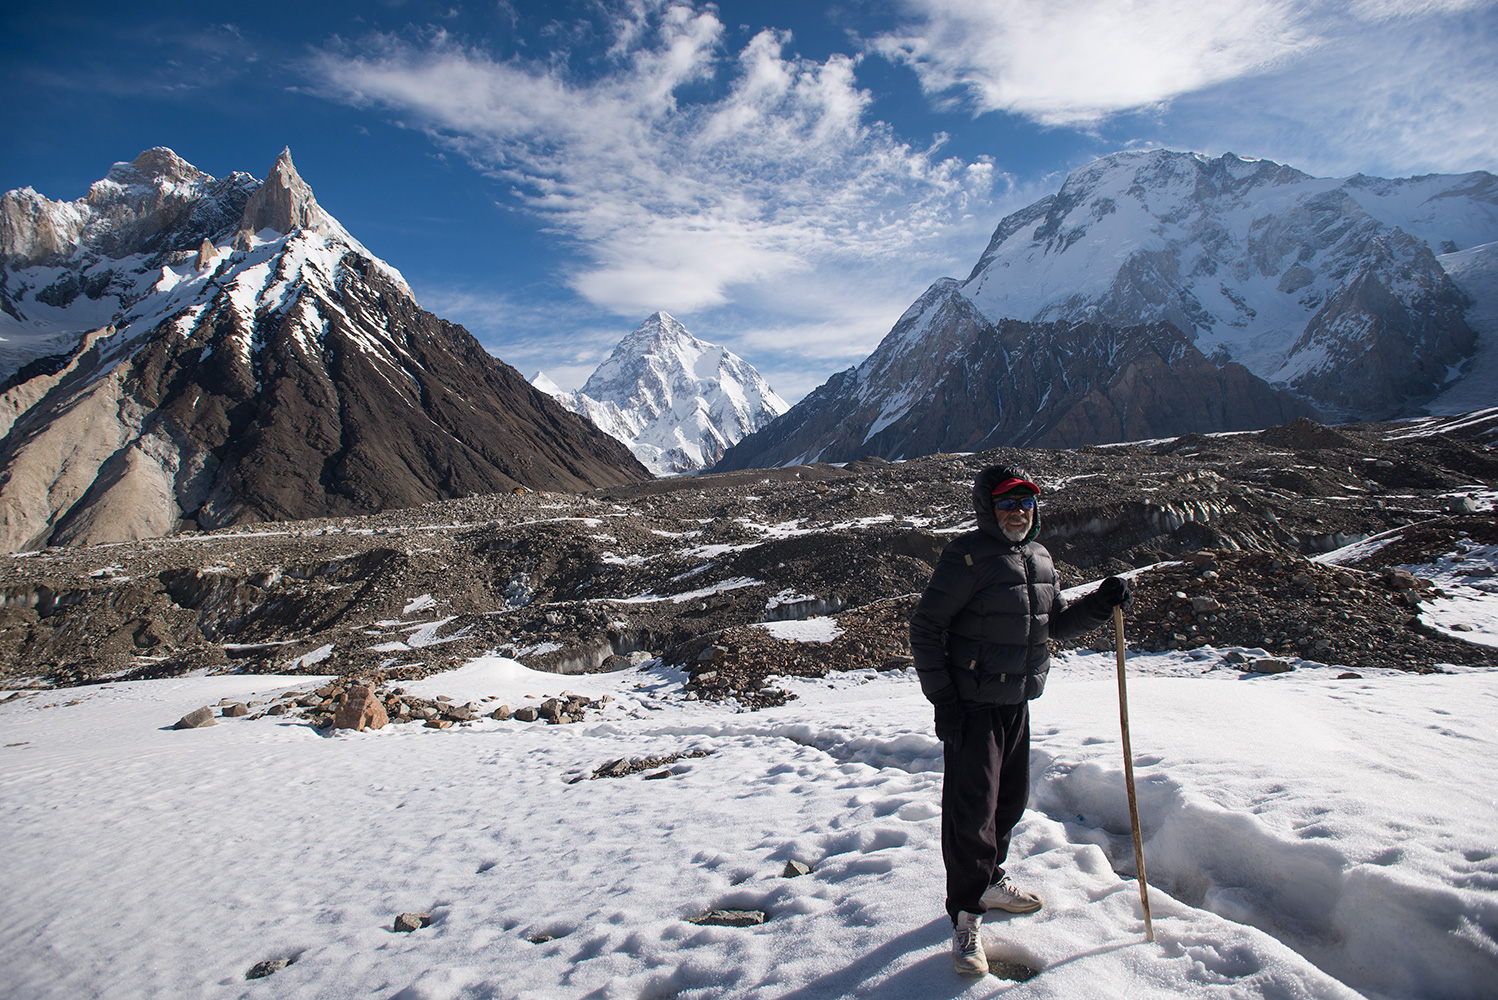 Mohammed Ali of Hushe is happy to be almost through the gnarly ground near Concordia and out onto the much easier surface of the Godwin Austen glacier for the rest of the journey to Broad Peak and K2 base camps...